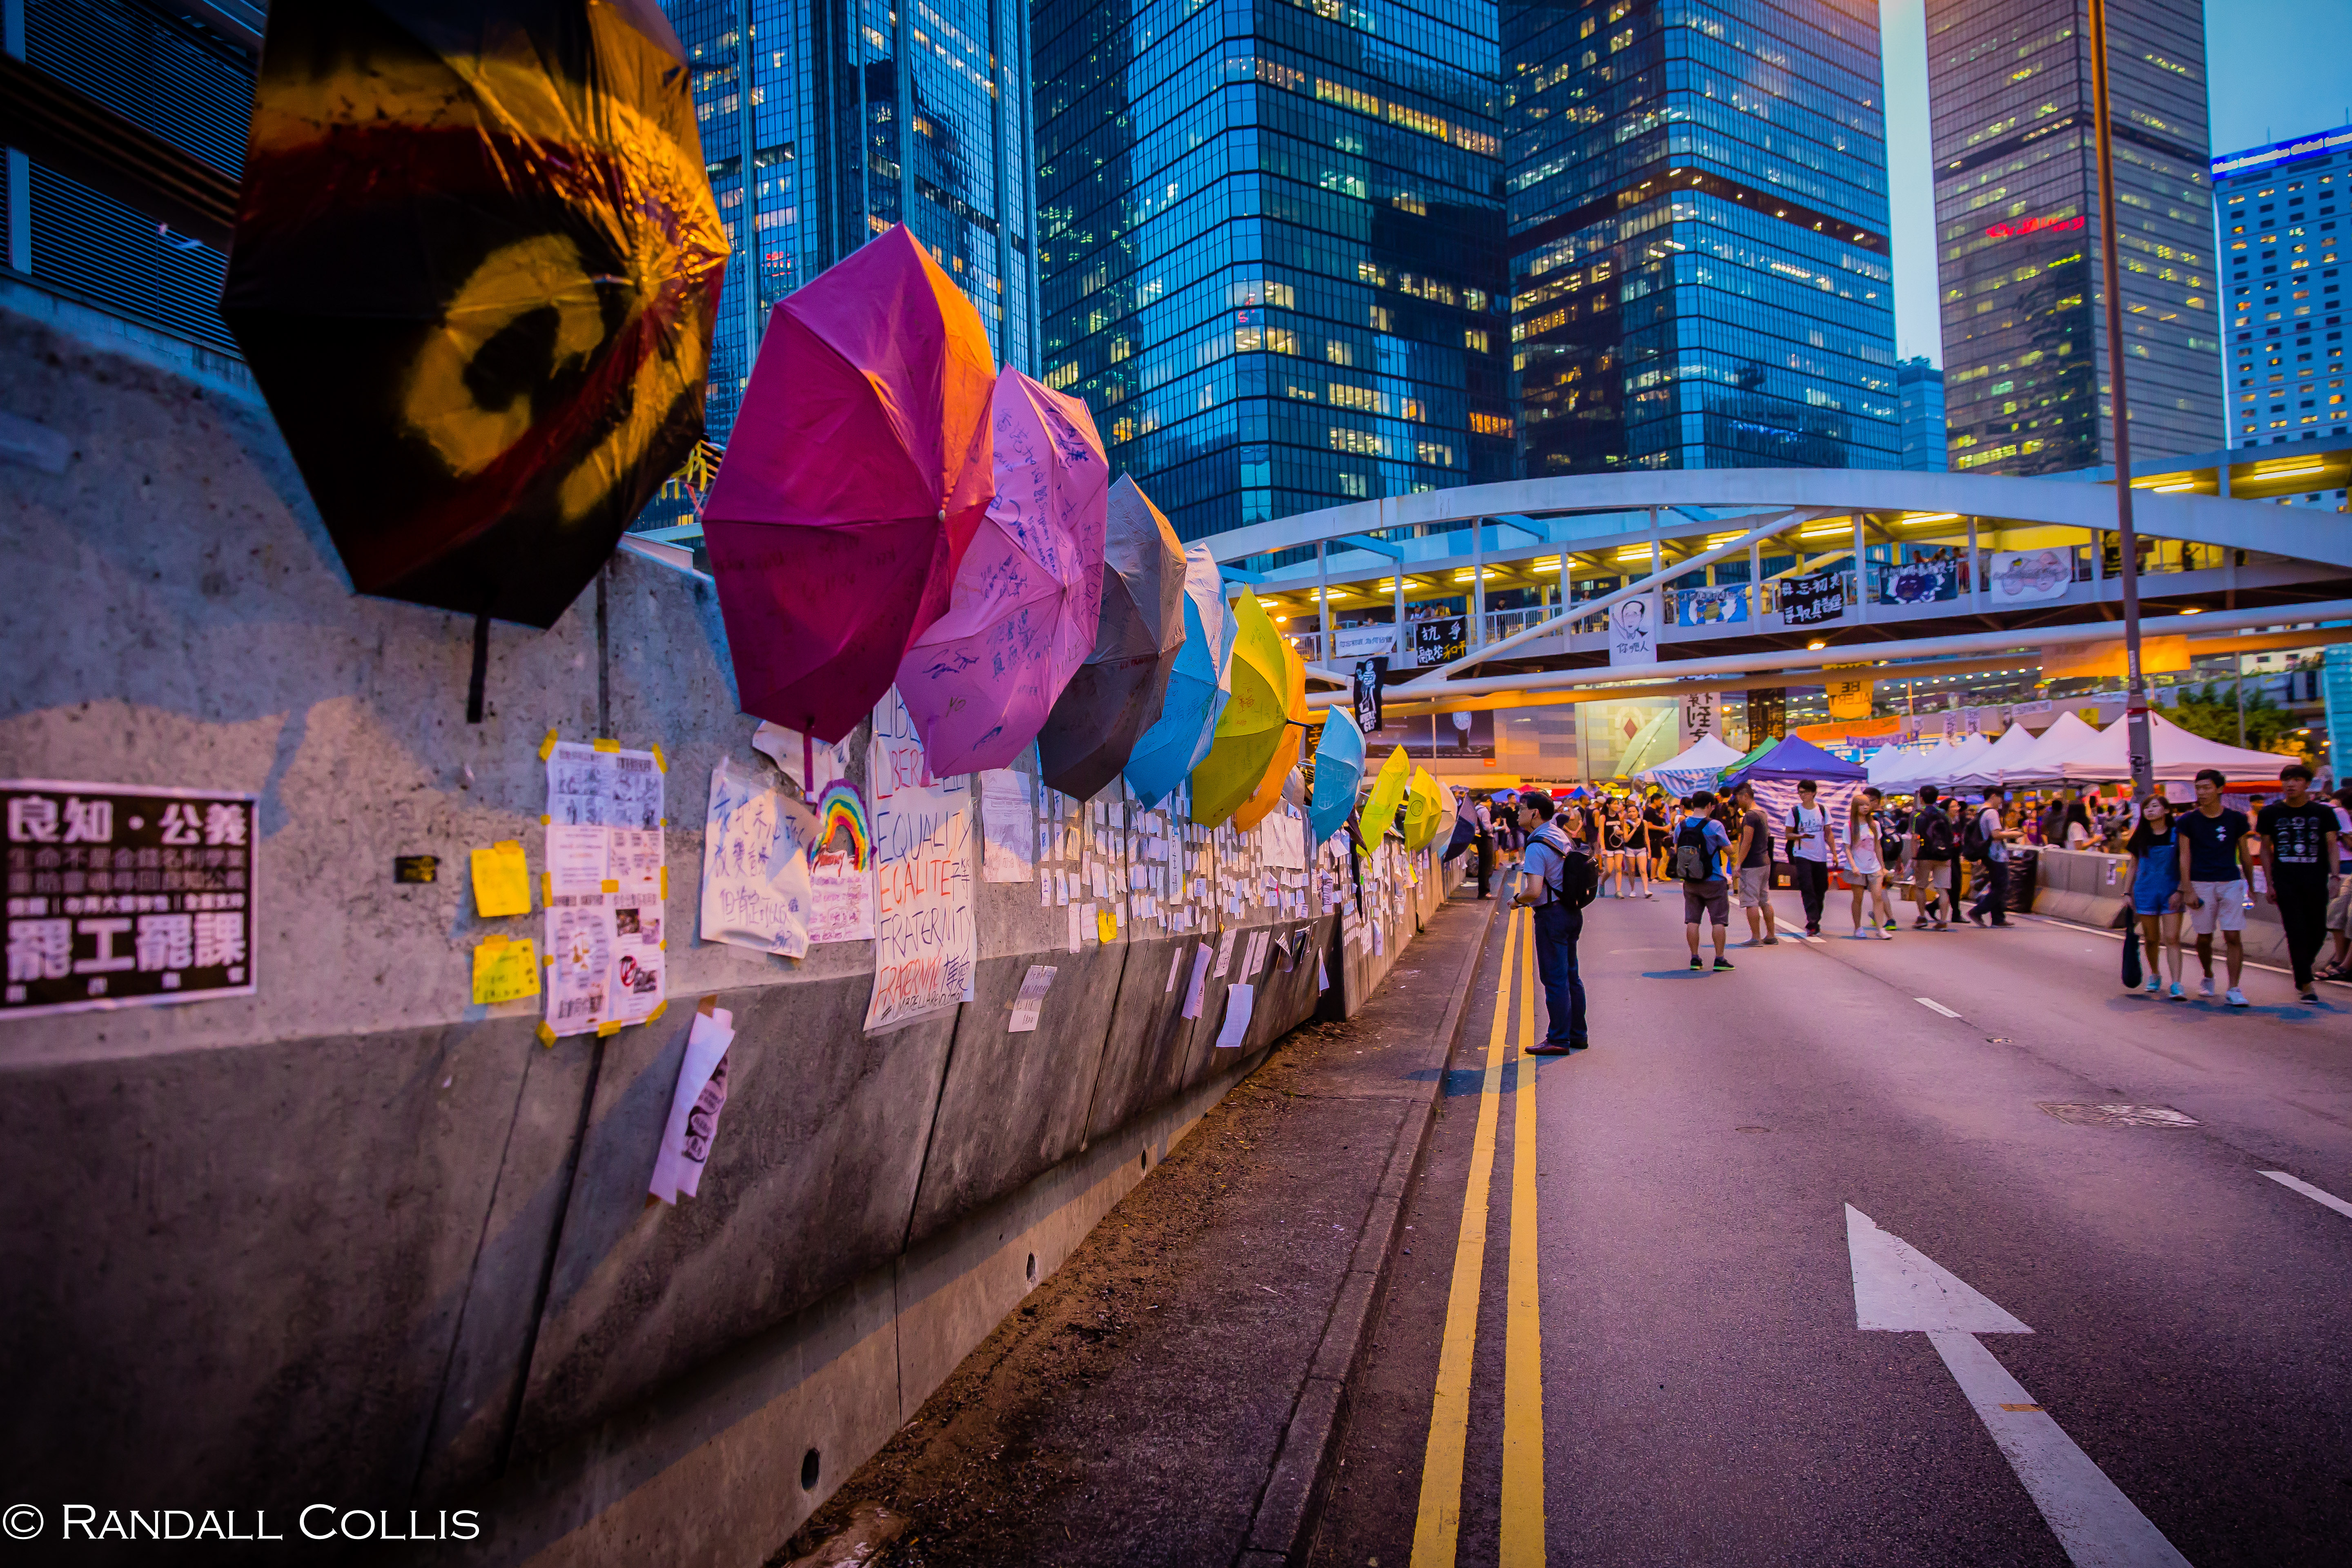 umbrella: democracy and universal suffrage essay Hong kong democracy occupy universal suffrage umbrella movement  called for  universal suffrage in the selection of the chief executive.